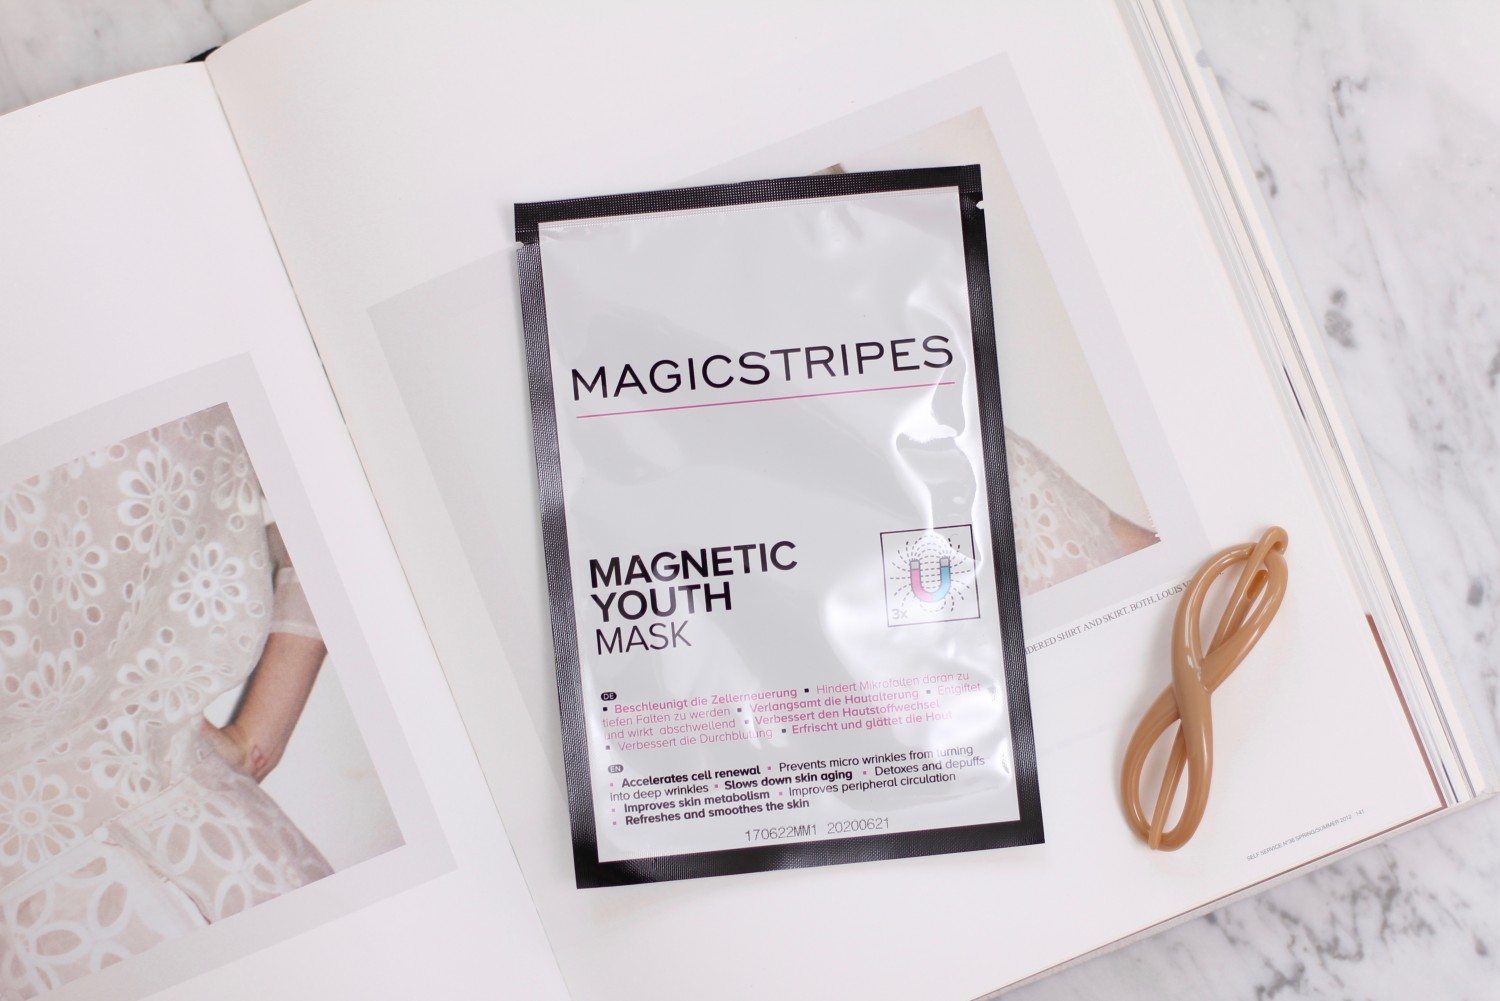 magicstripes-magnetic-youth